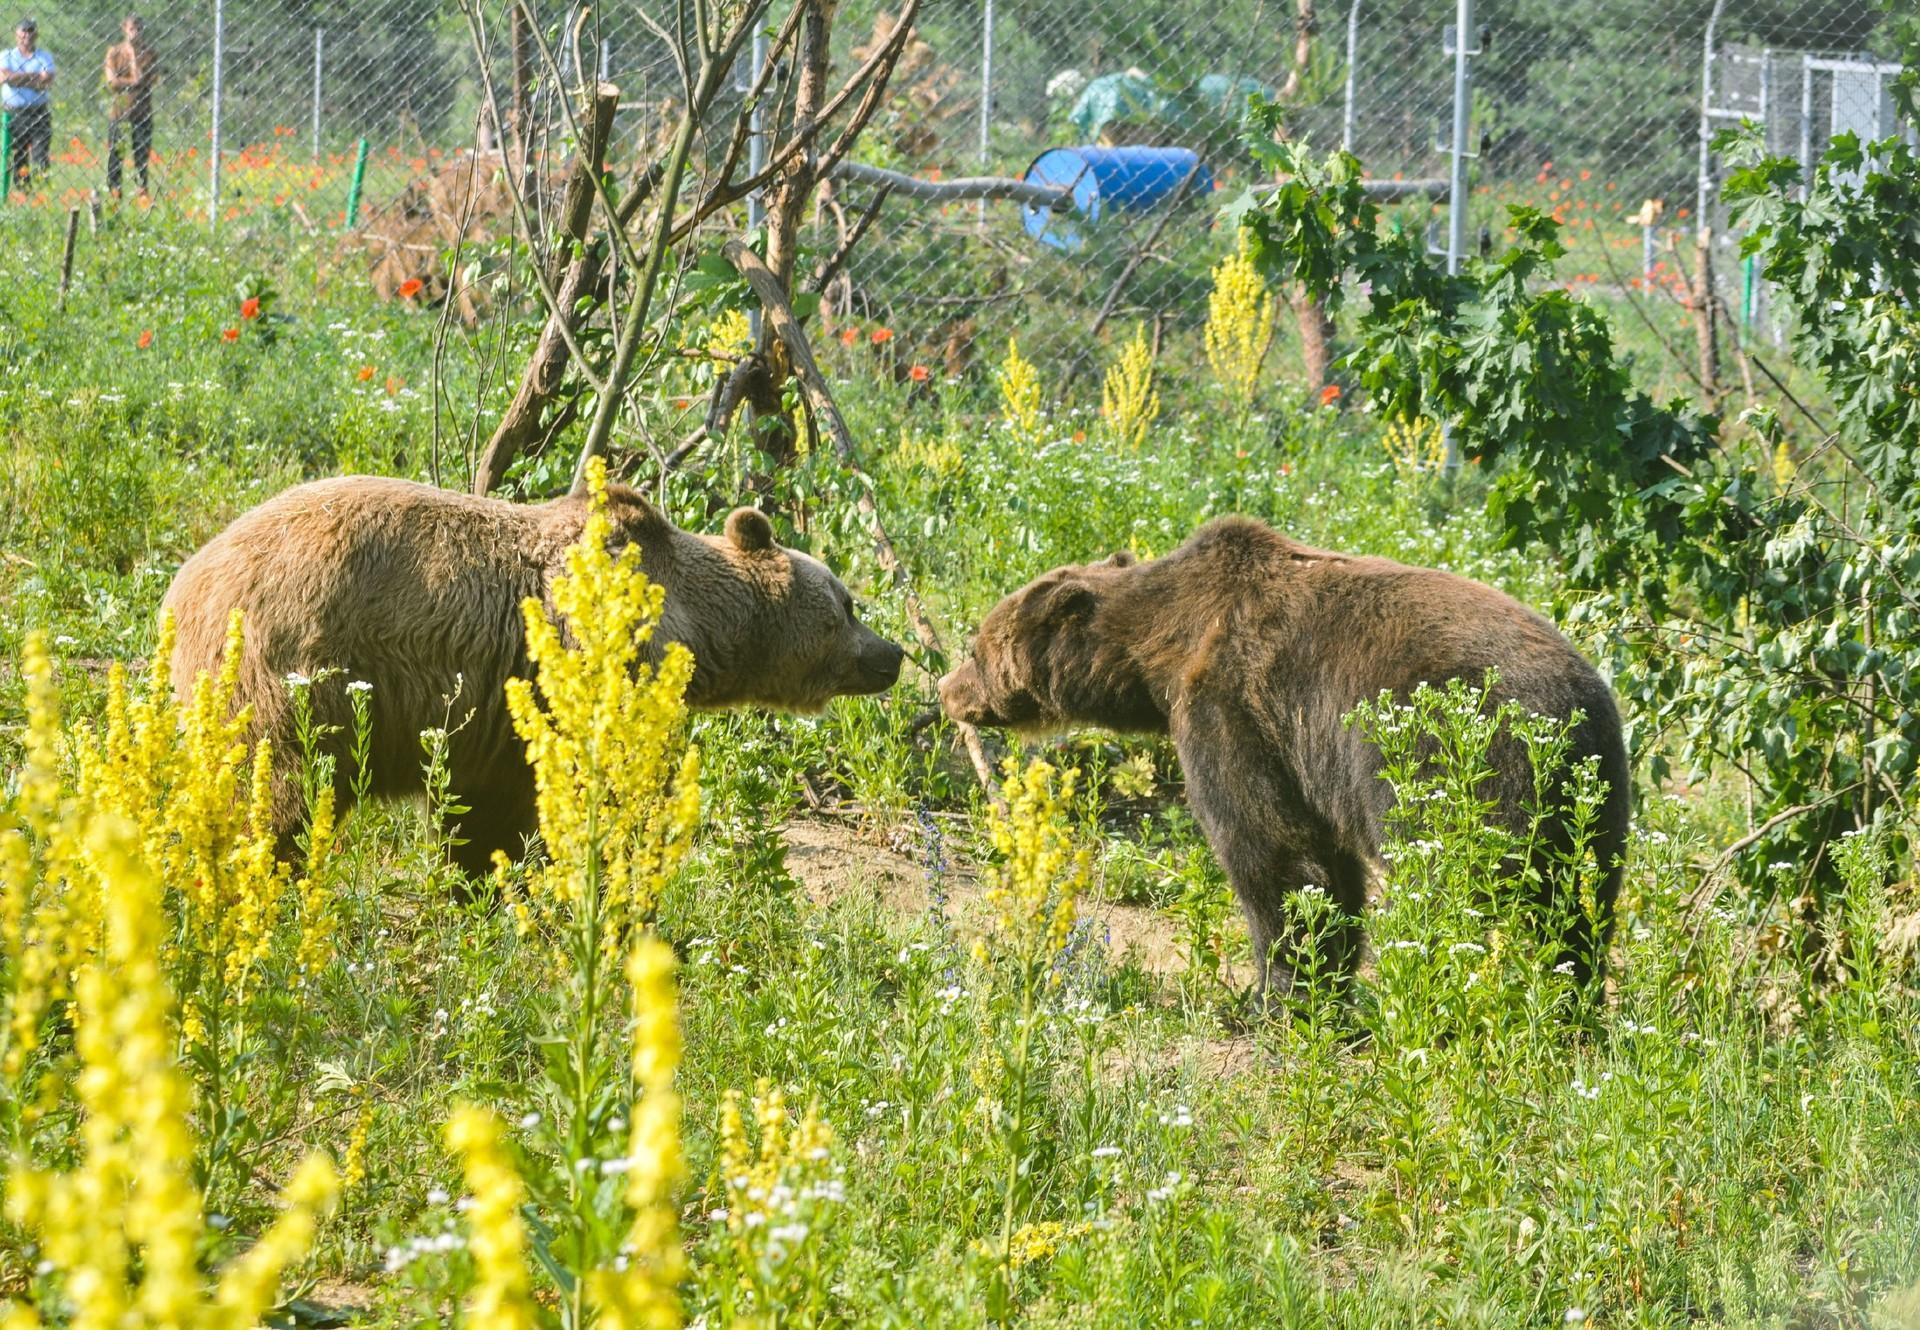 Bears Tyson and Mashutka at BEAR SANCTUARY Domazhyr